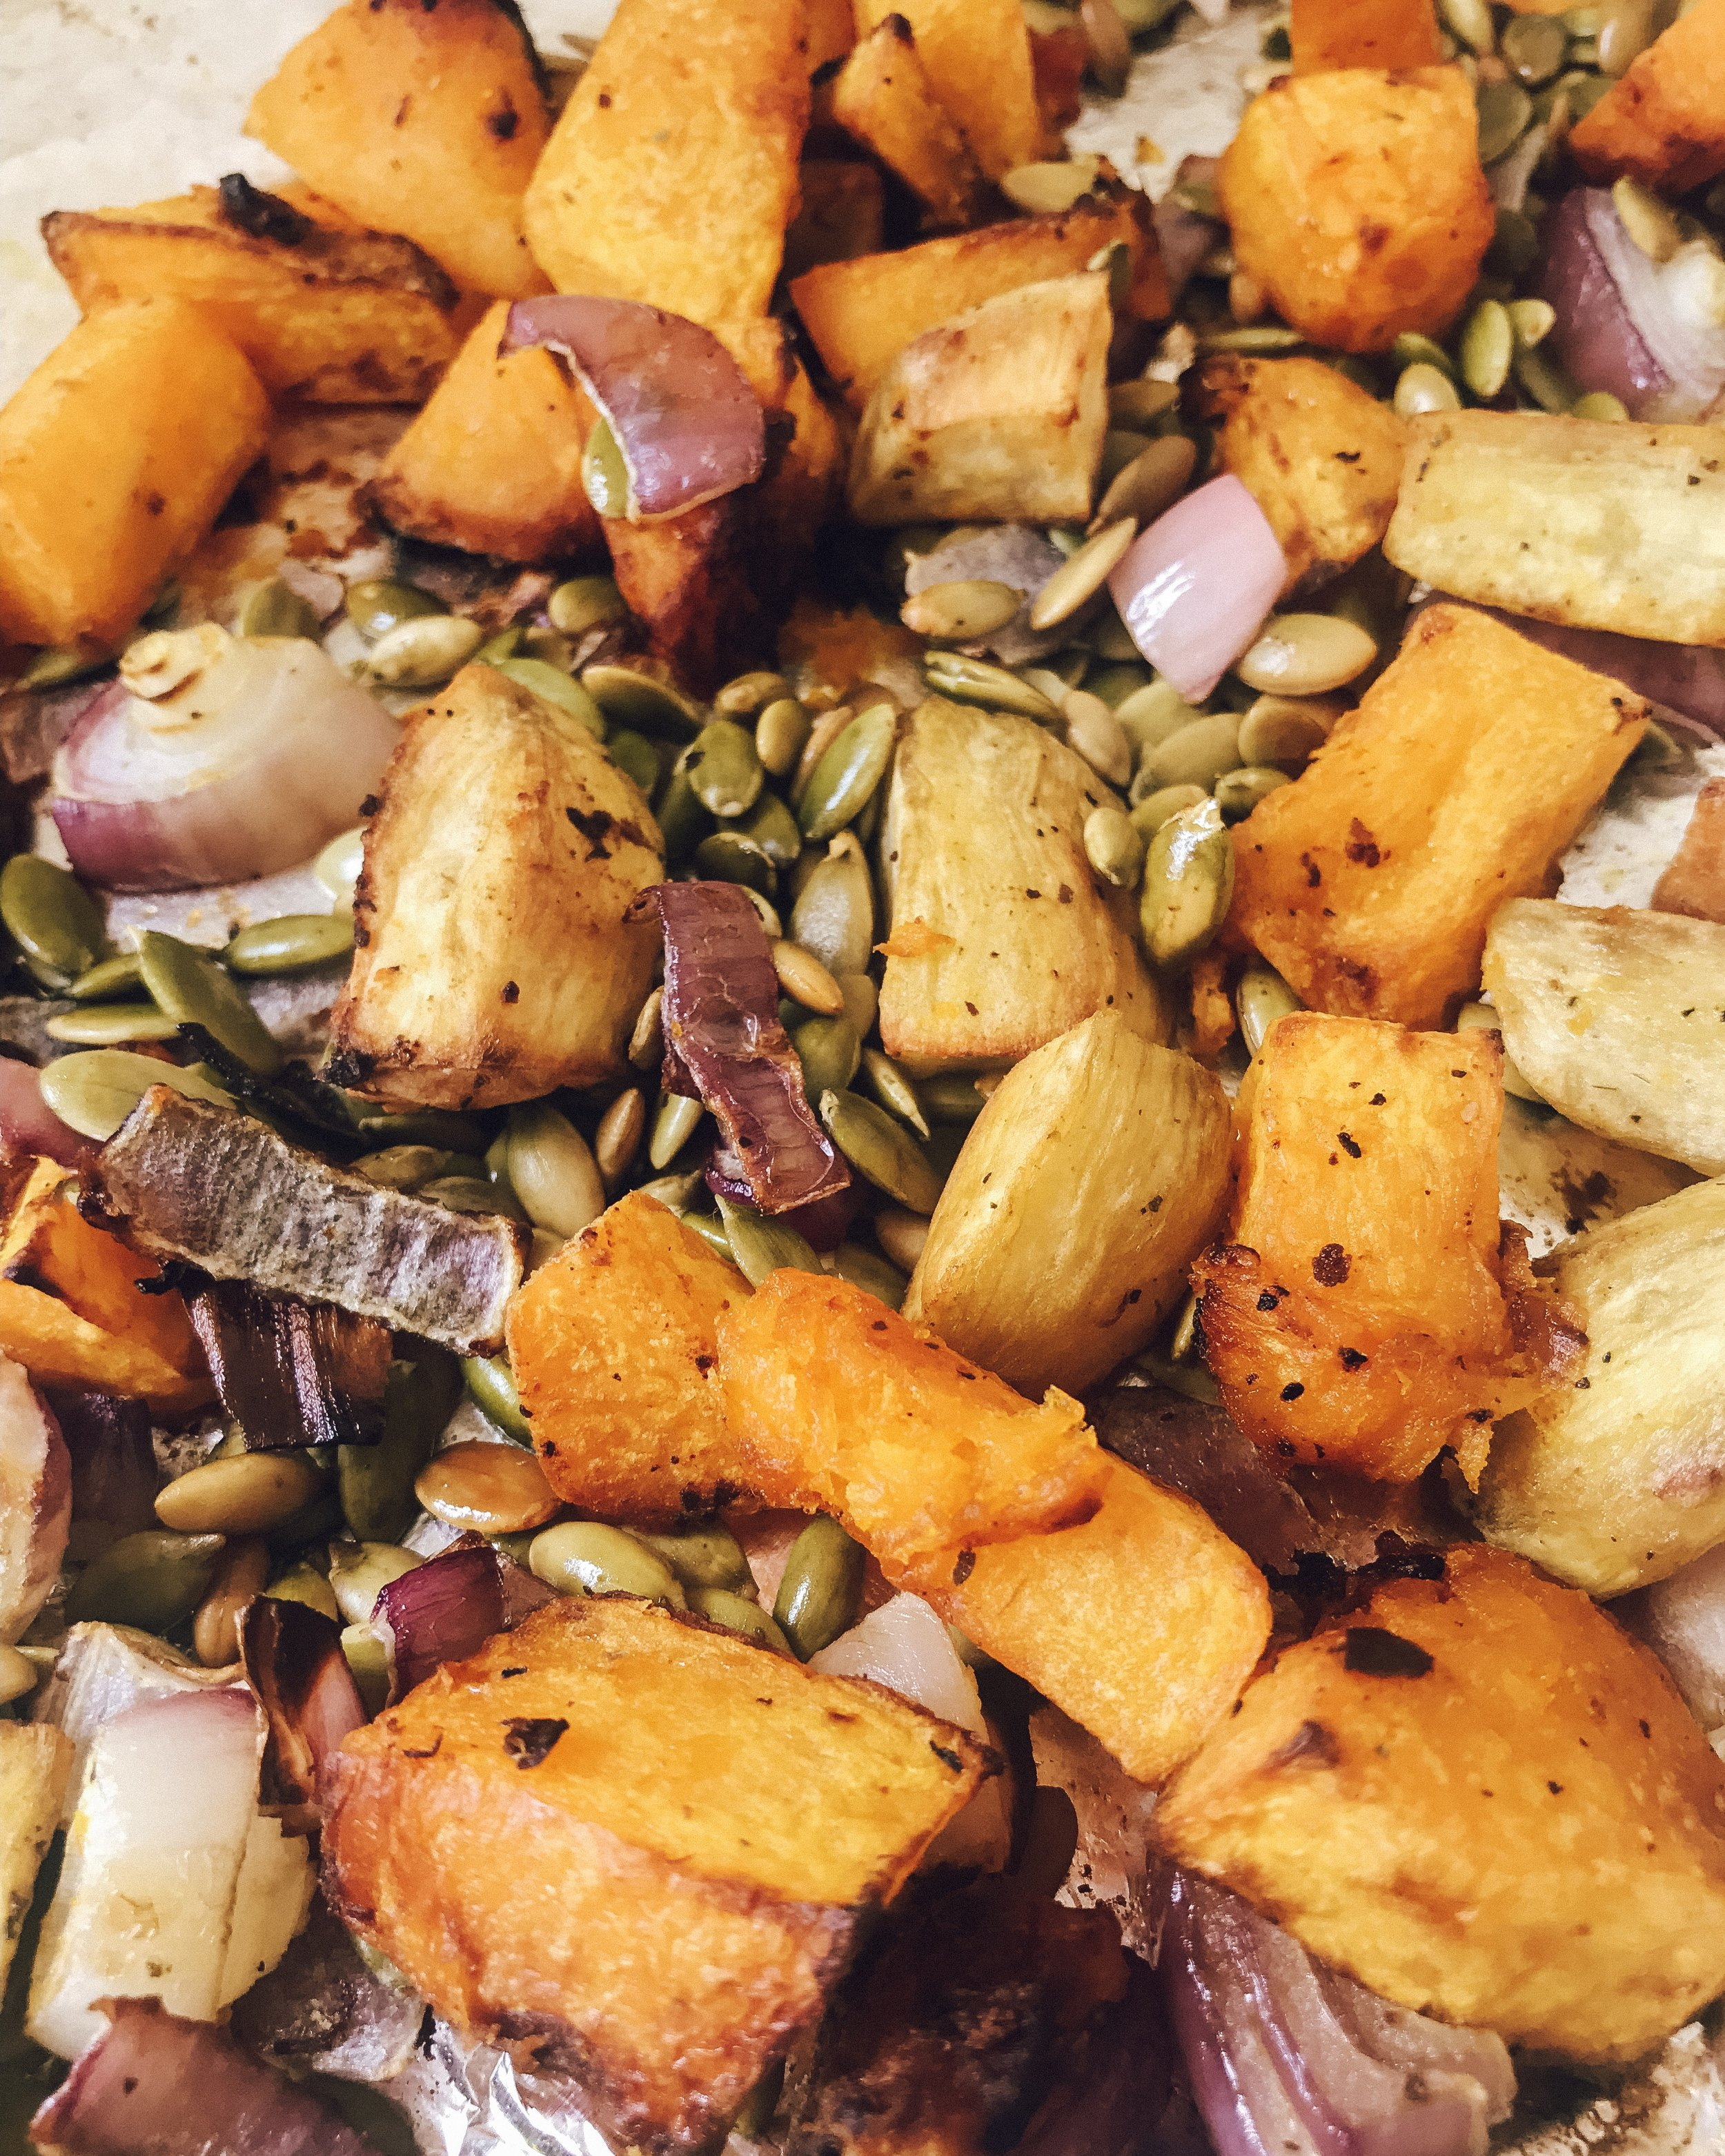 Roast veggies with pumpkin seeds